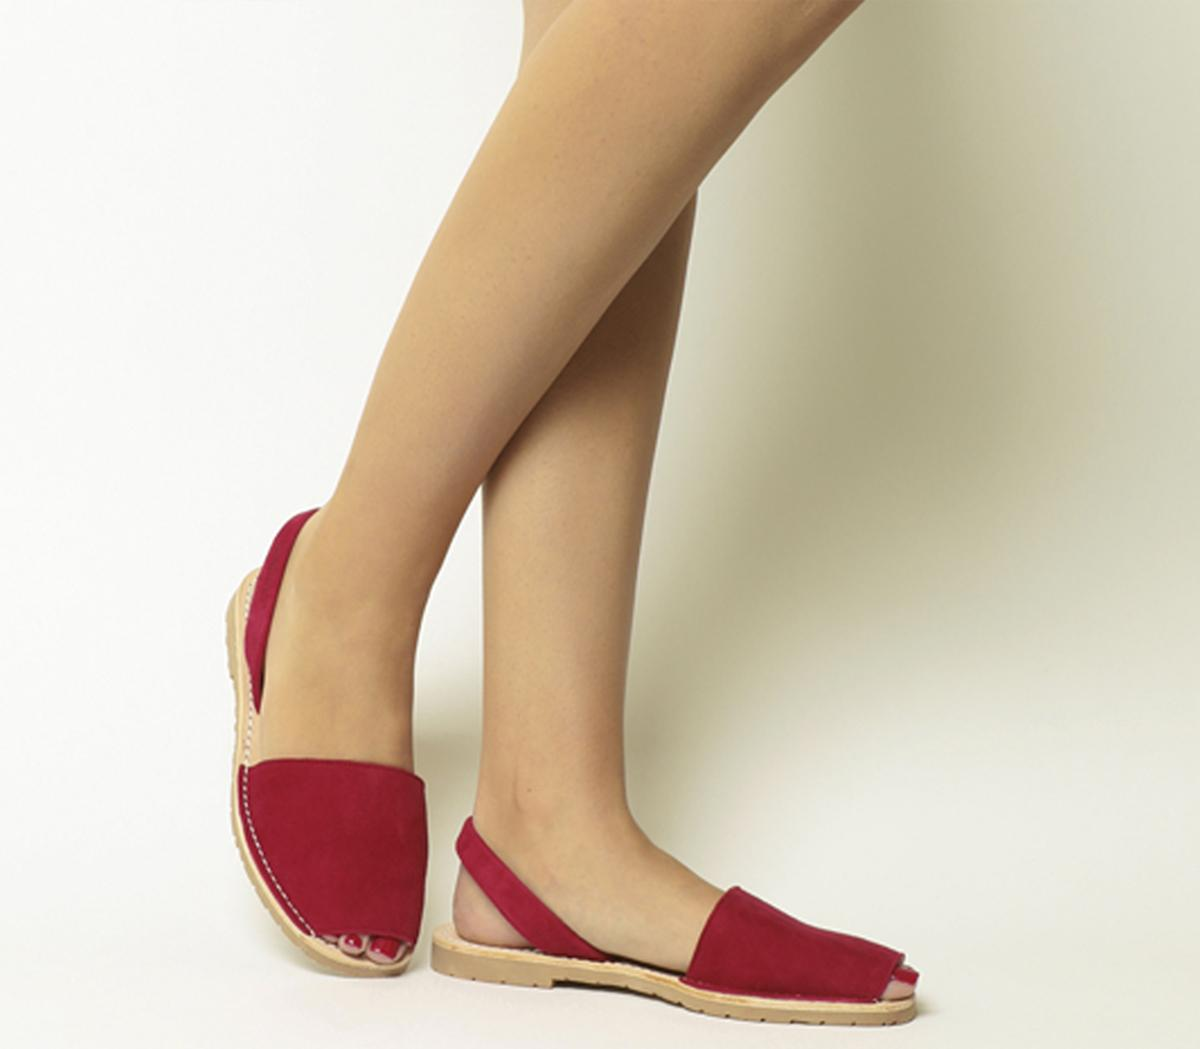 8e678ed7071f Sentinel Womens Solillas Red Leather Slip on Sandals Size UK 6  Ex-Display